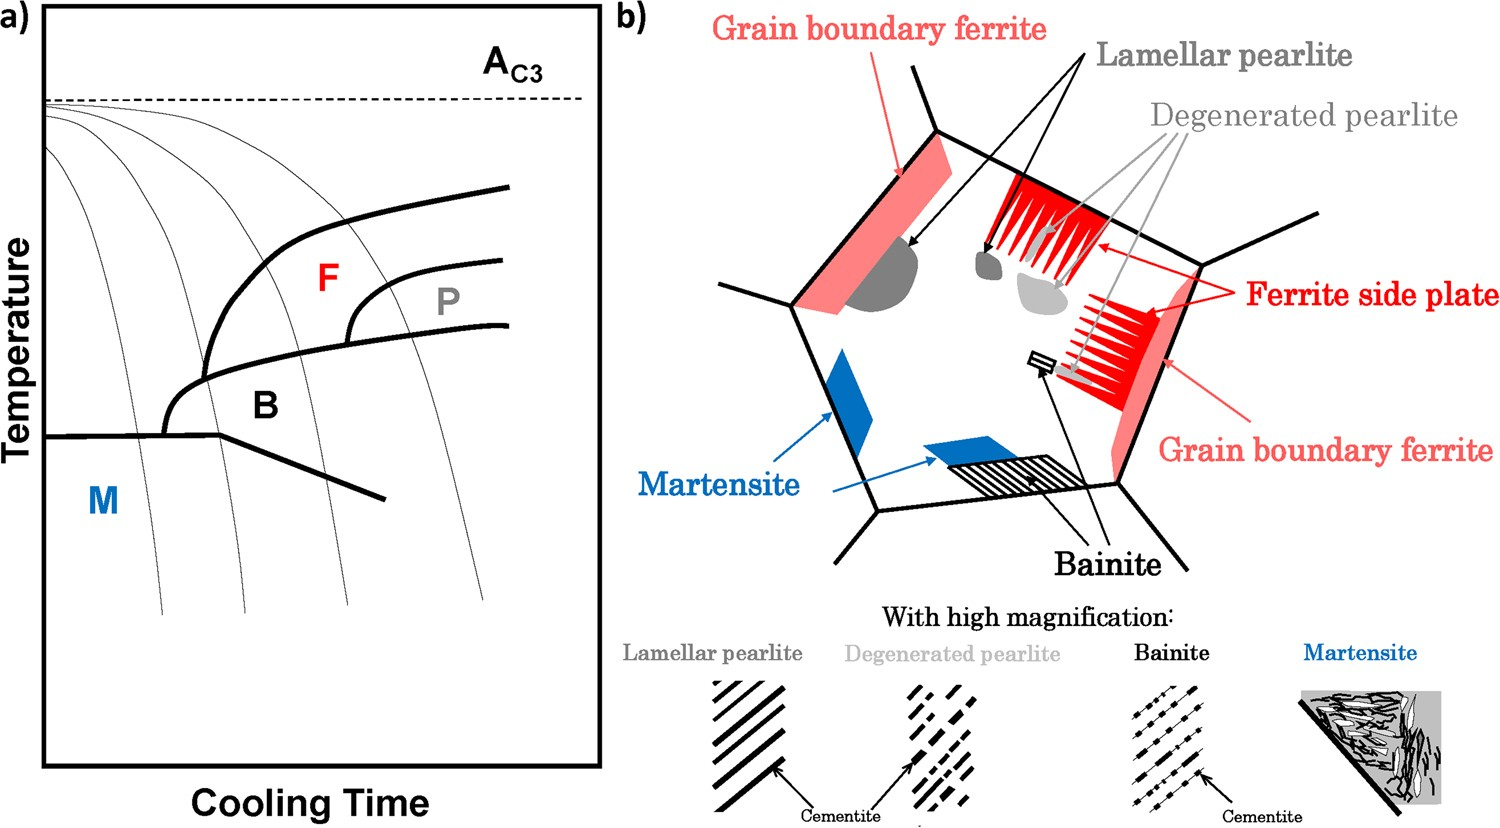 Pattern Recognition With Machine Learning On Optical Microscopy Welding Cct Diagram Images Of Typical Metallurgical Microstructures Scientific Reports